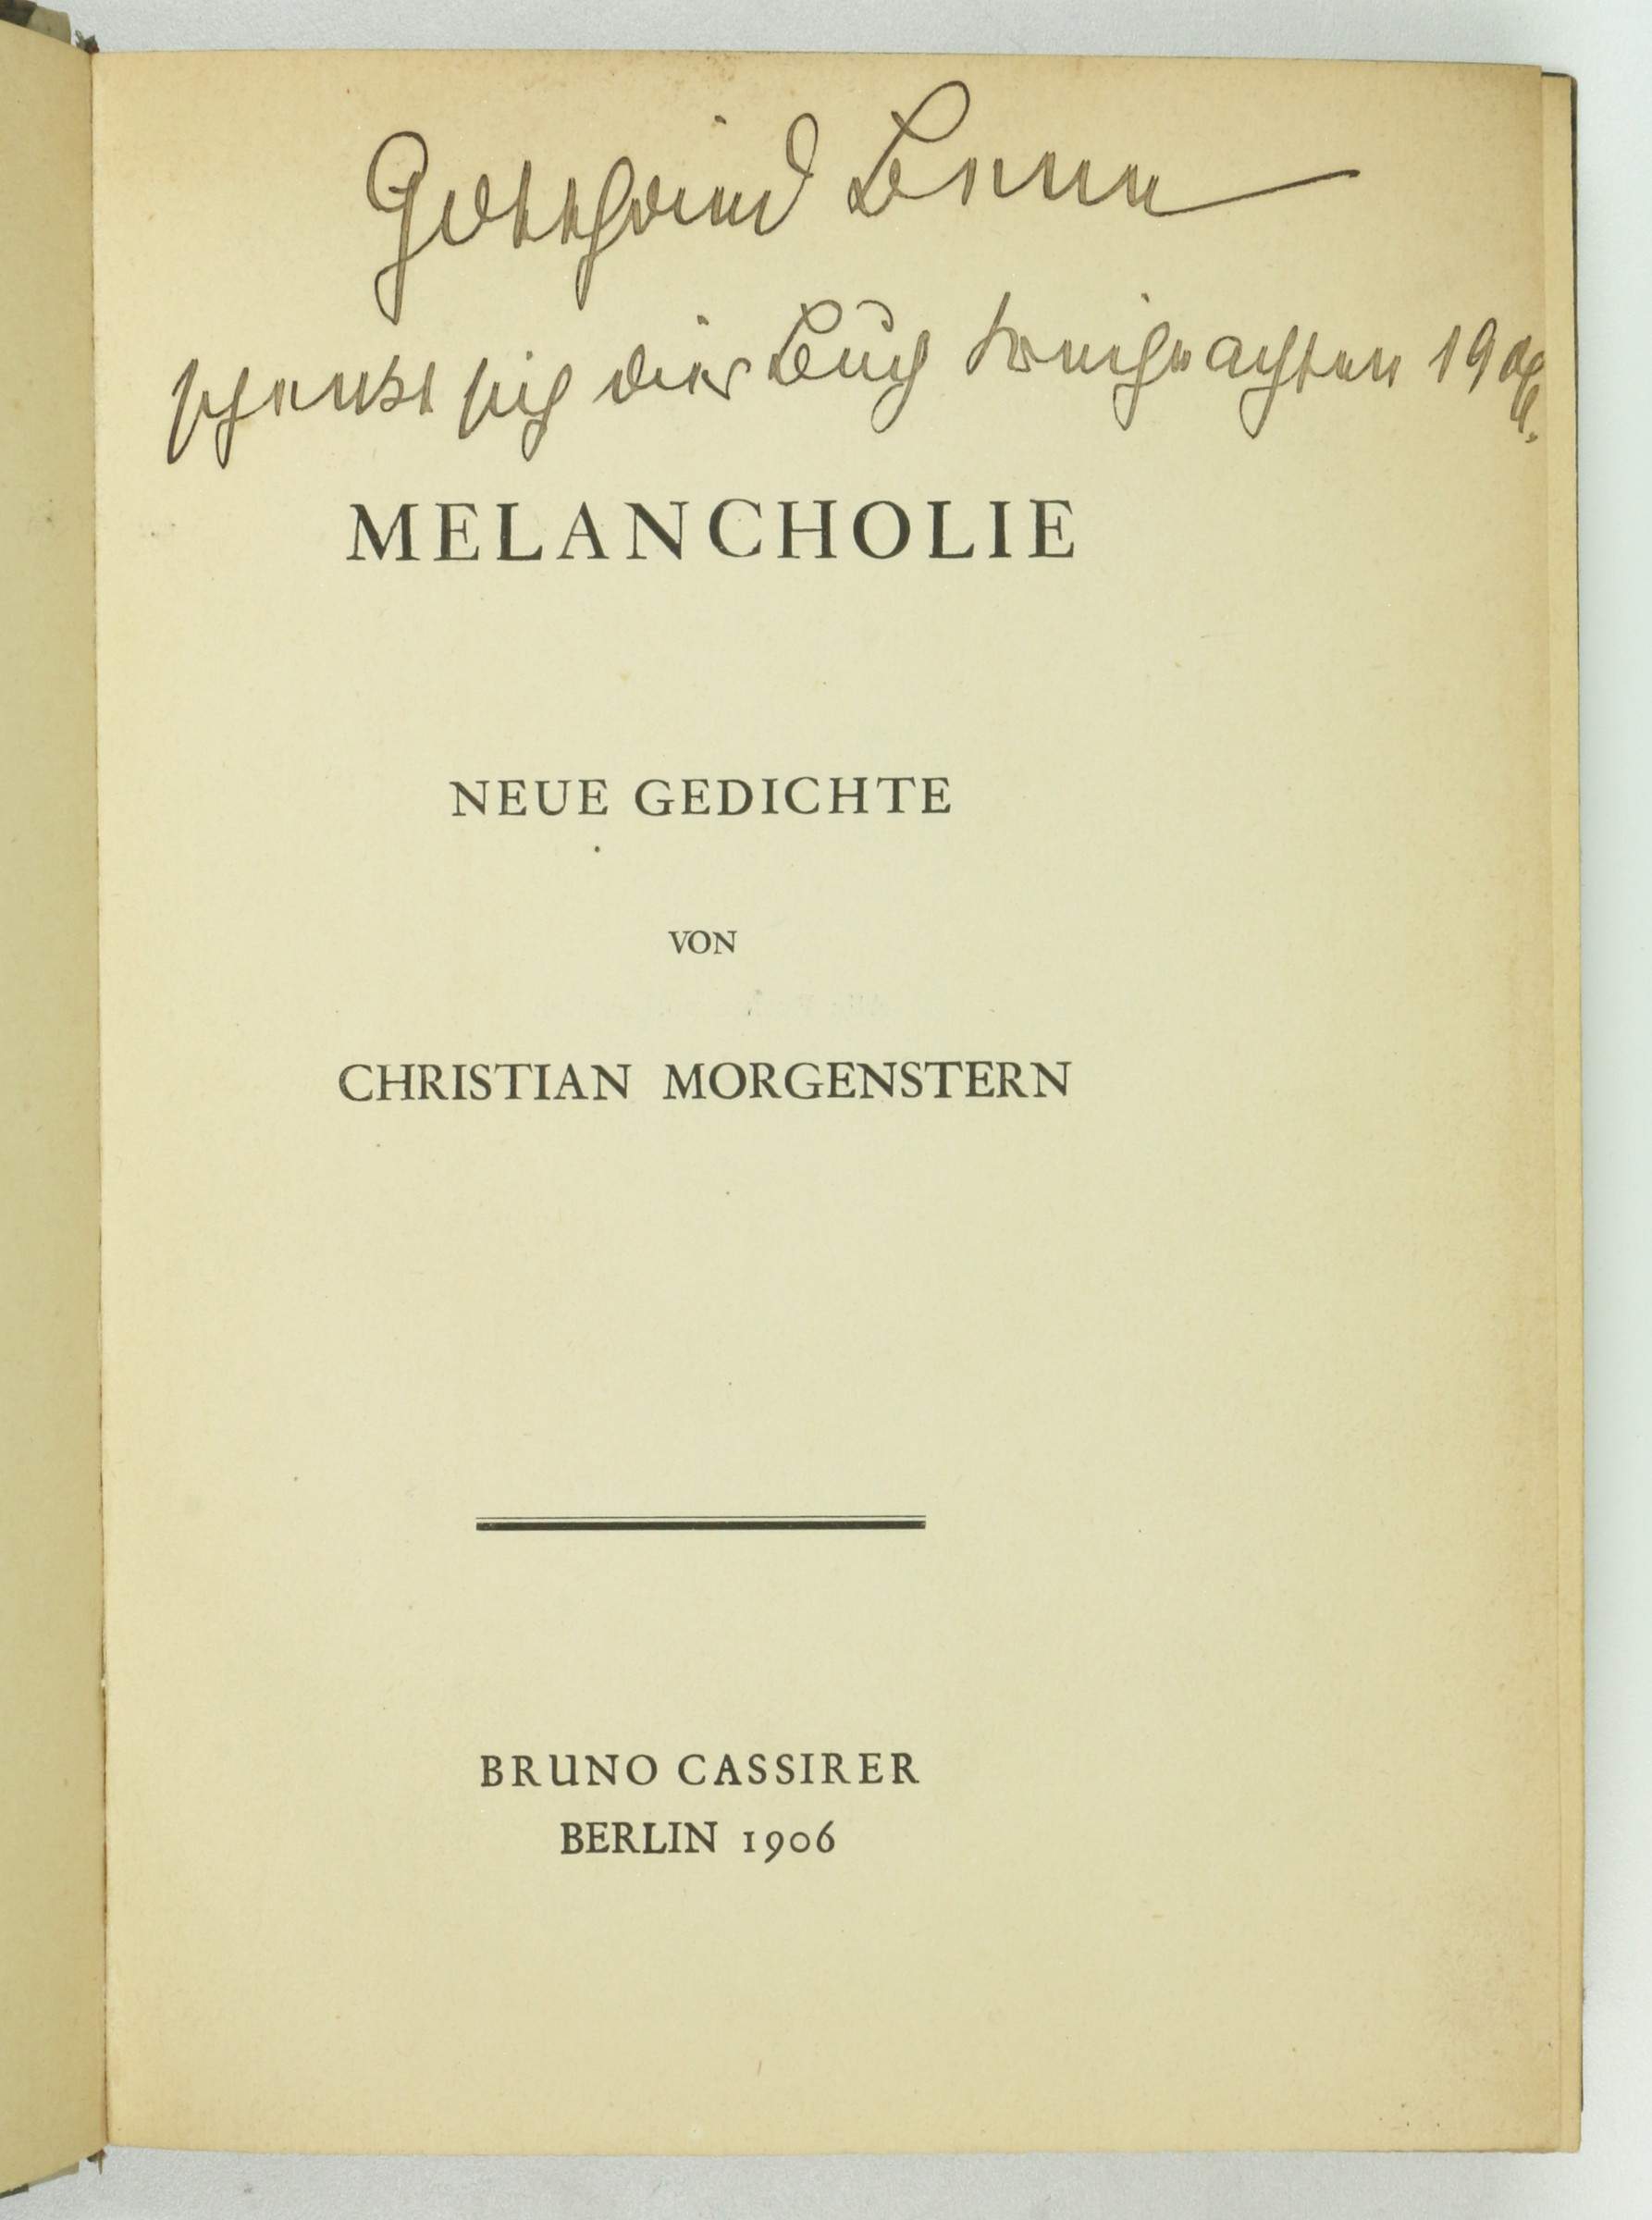 Autograph Inscription Signed In Christian